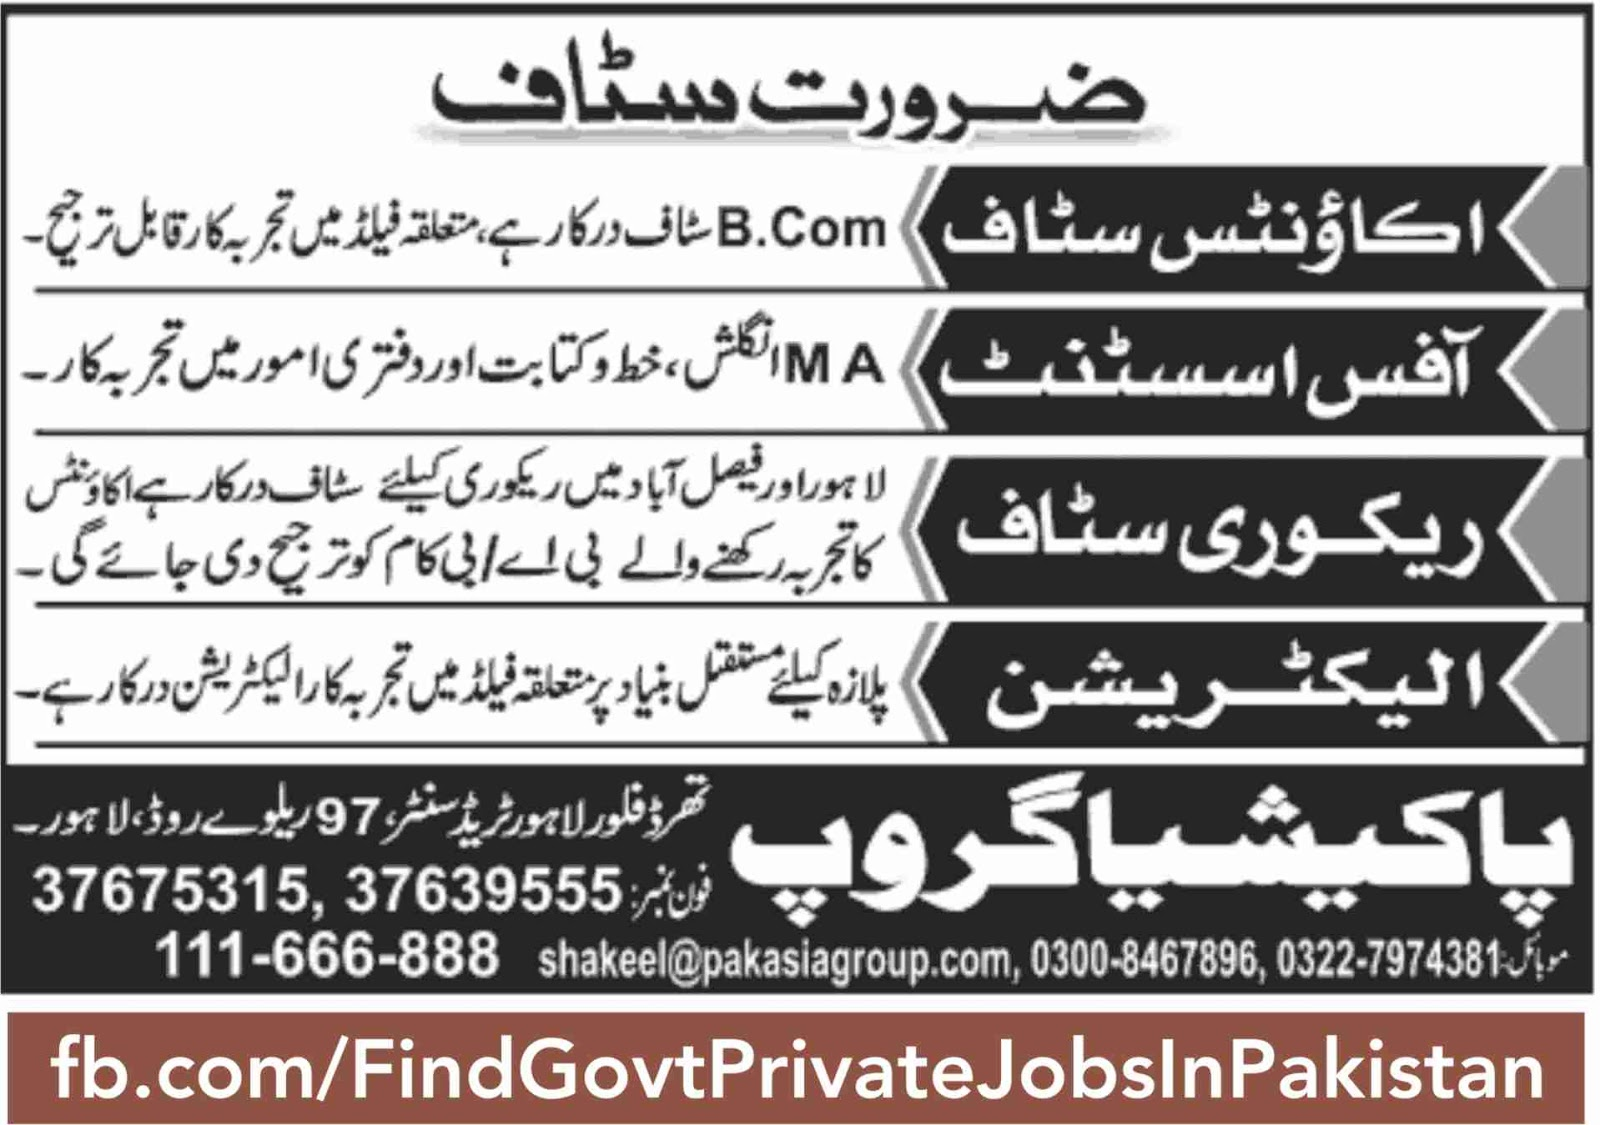 pakisia group job ads in sunday jang